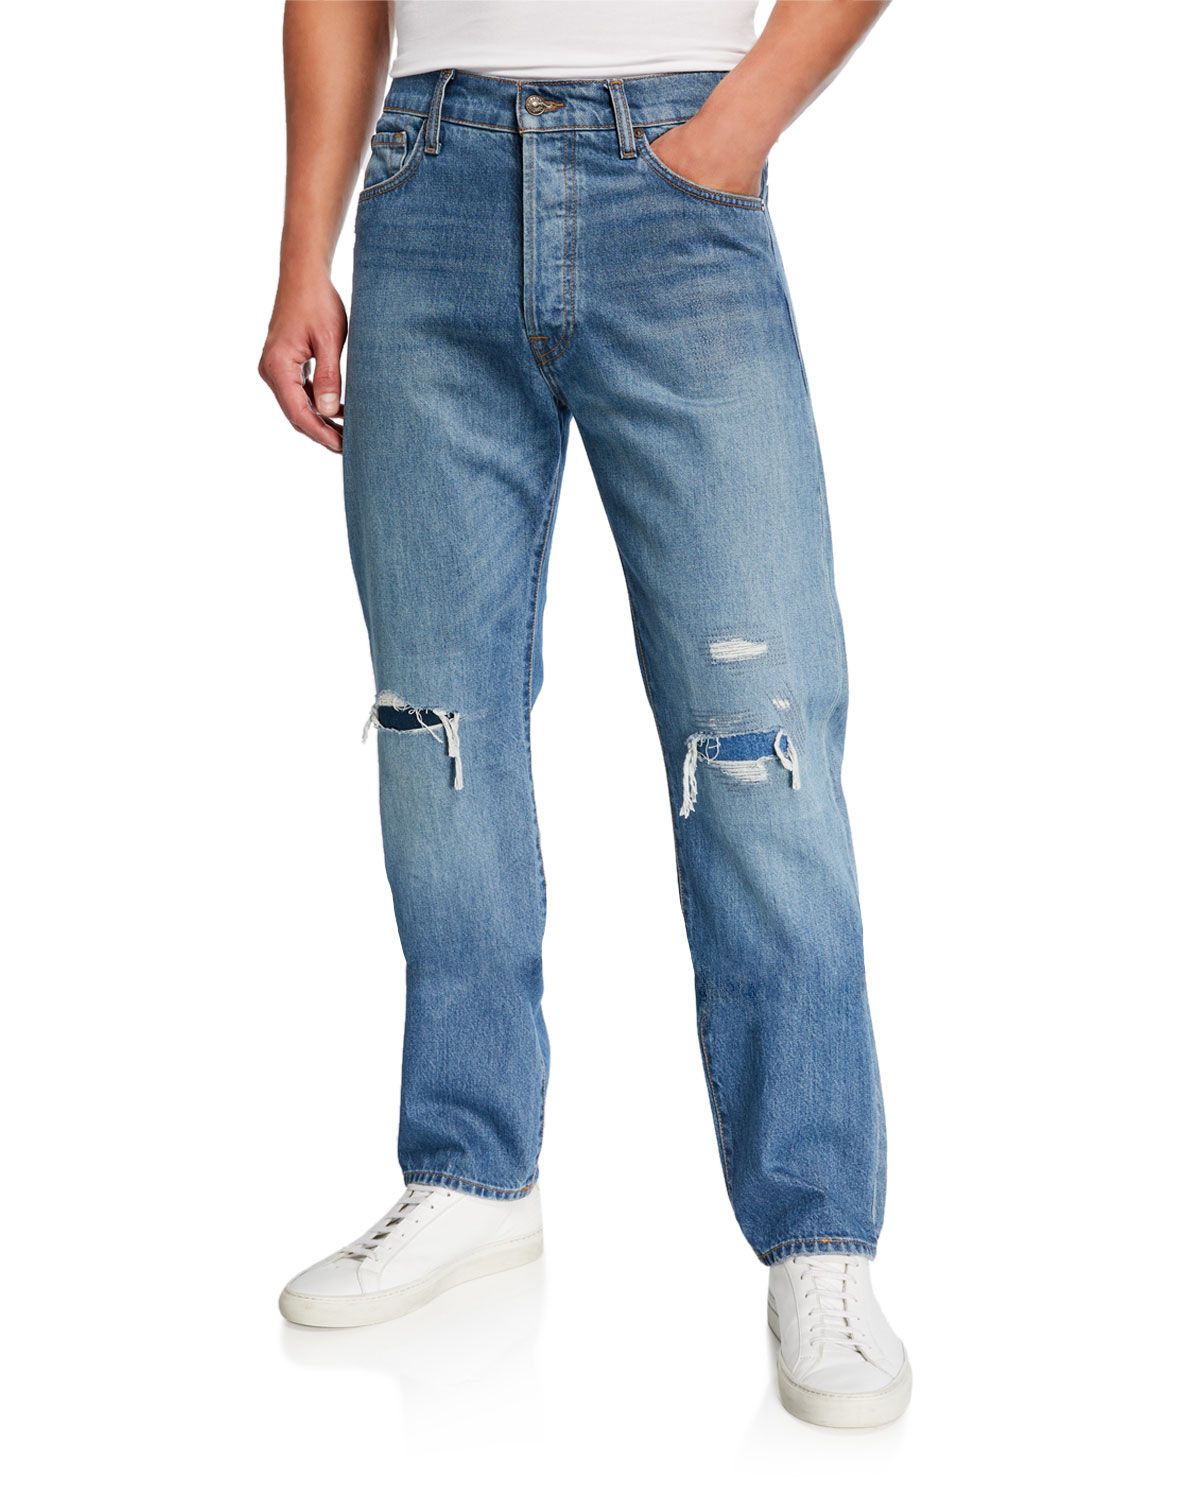 7 for all mankind Men's Rip/Repair Vintage Straight Jeans